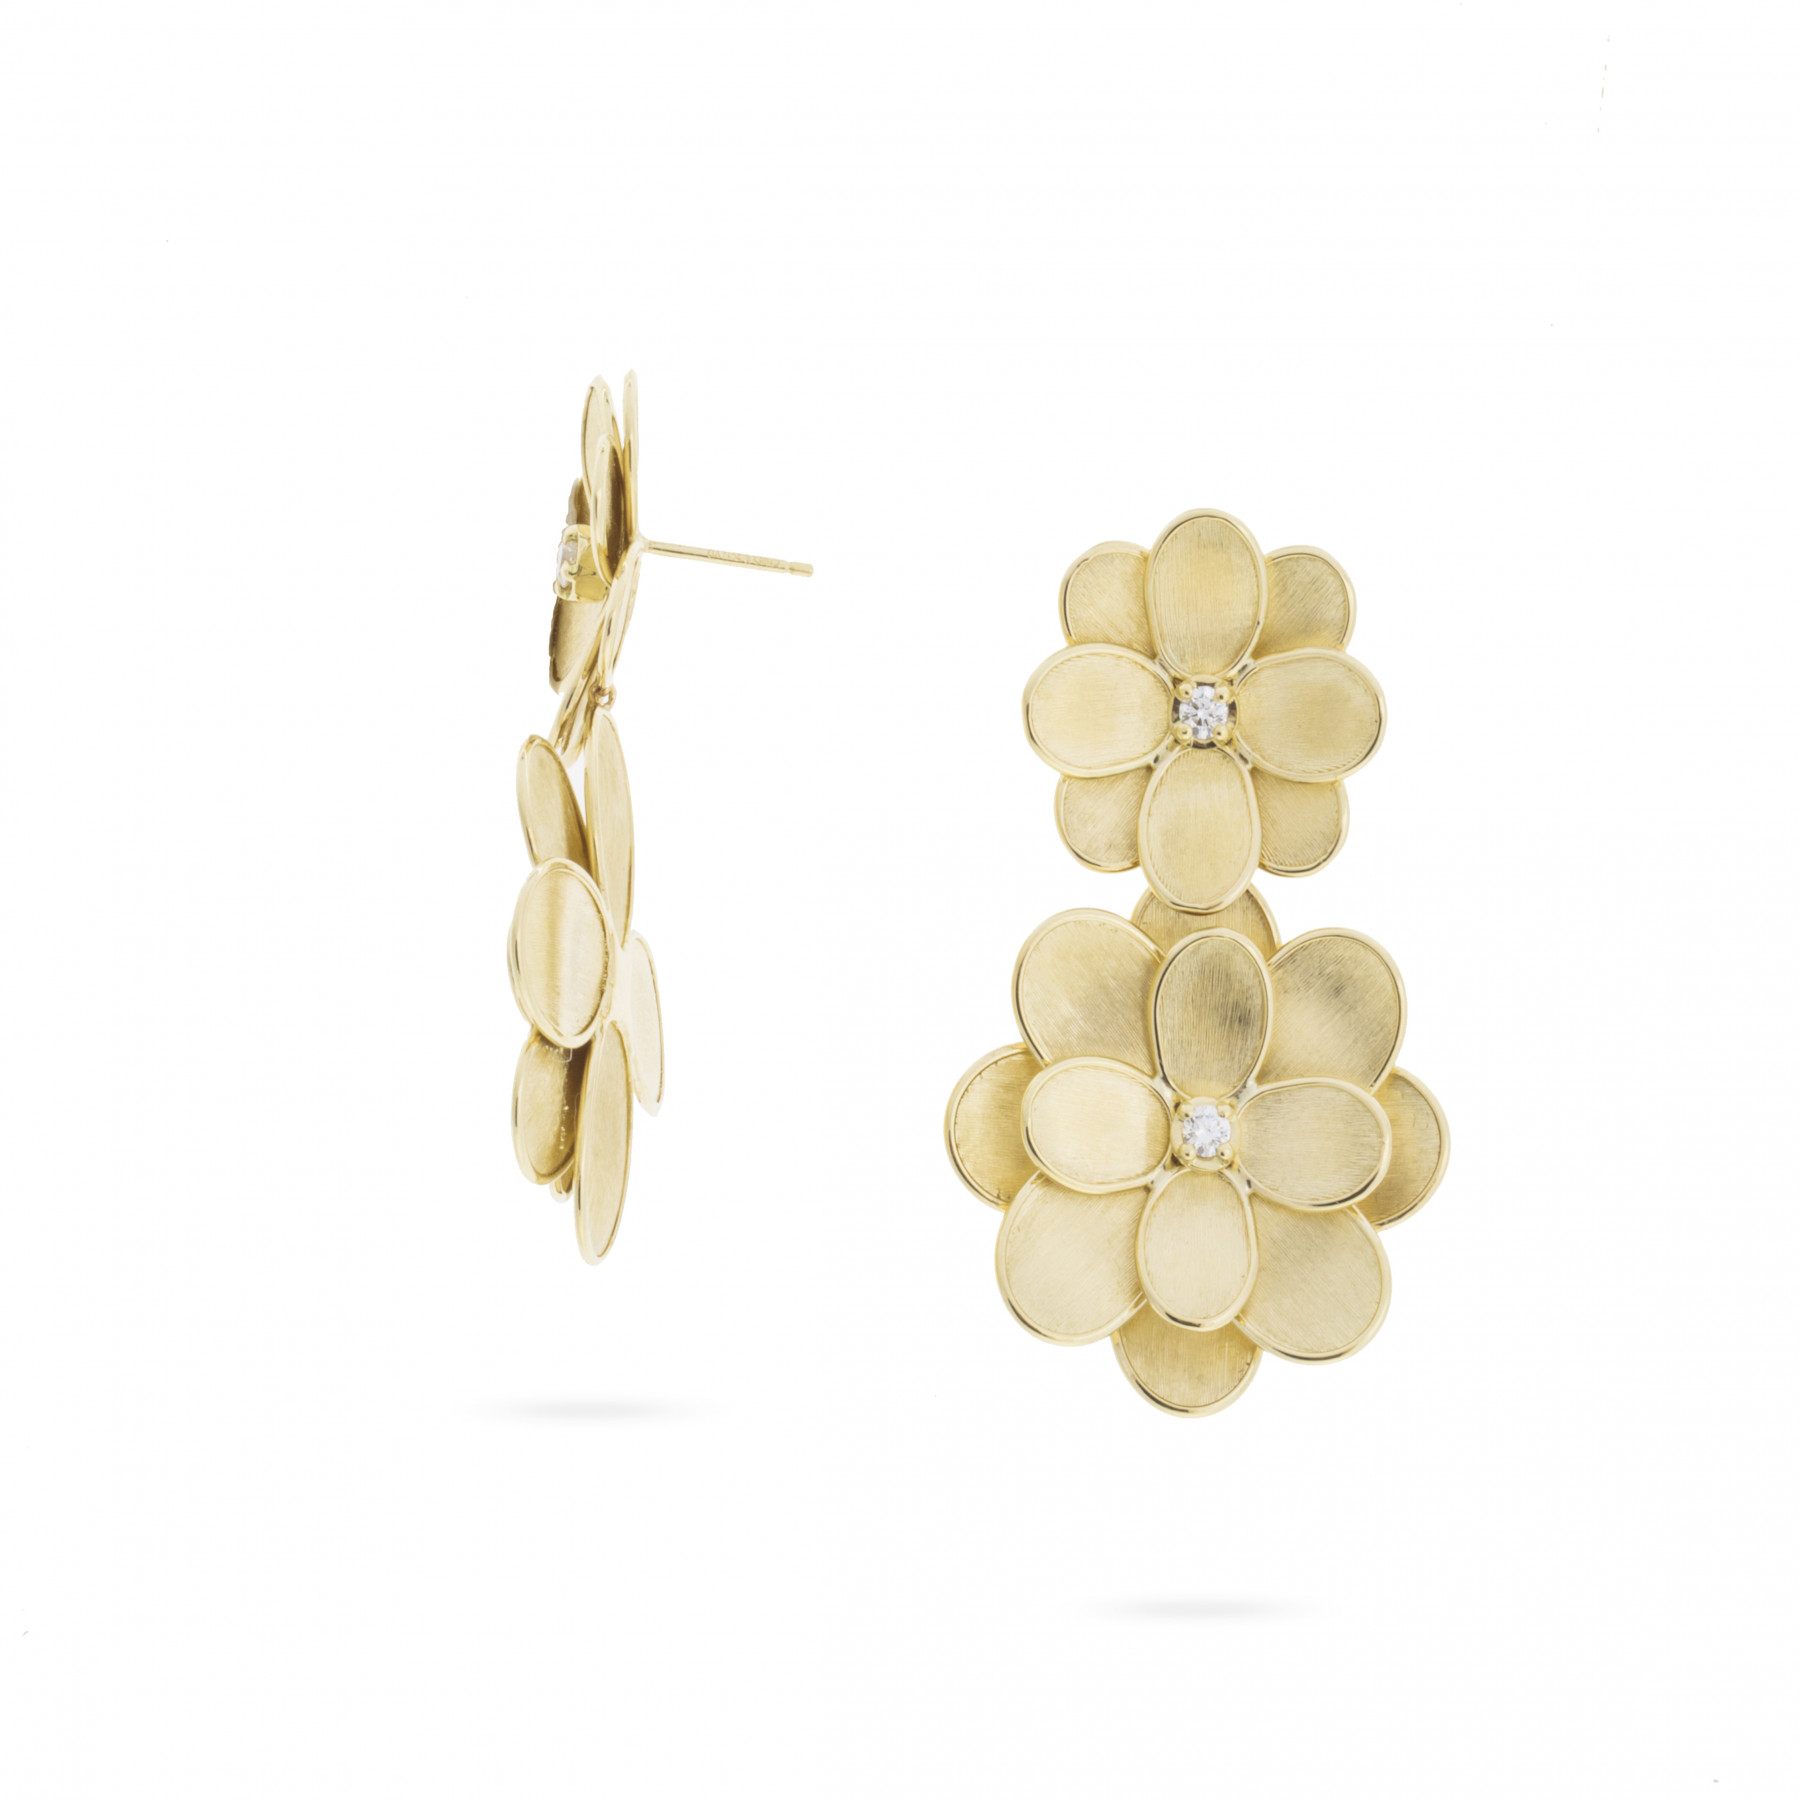 Marco Bicego Petali Double Flower Drop Earrings front view